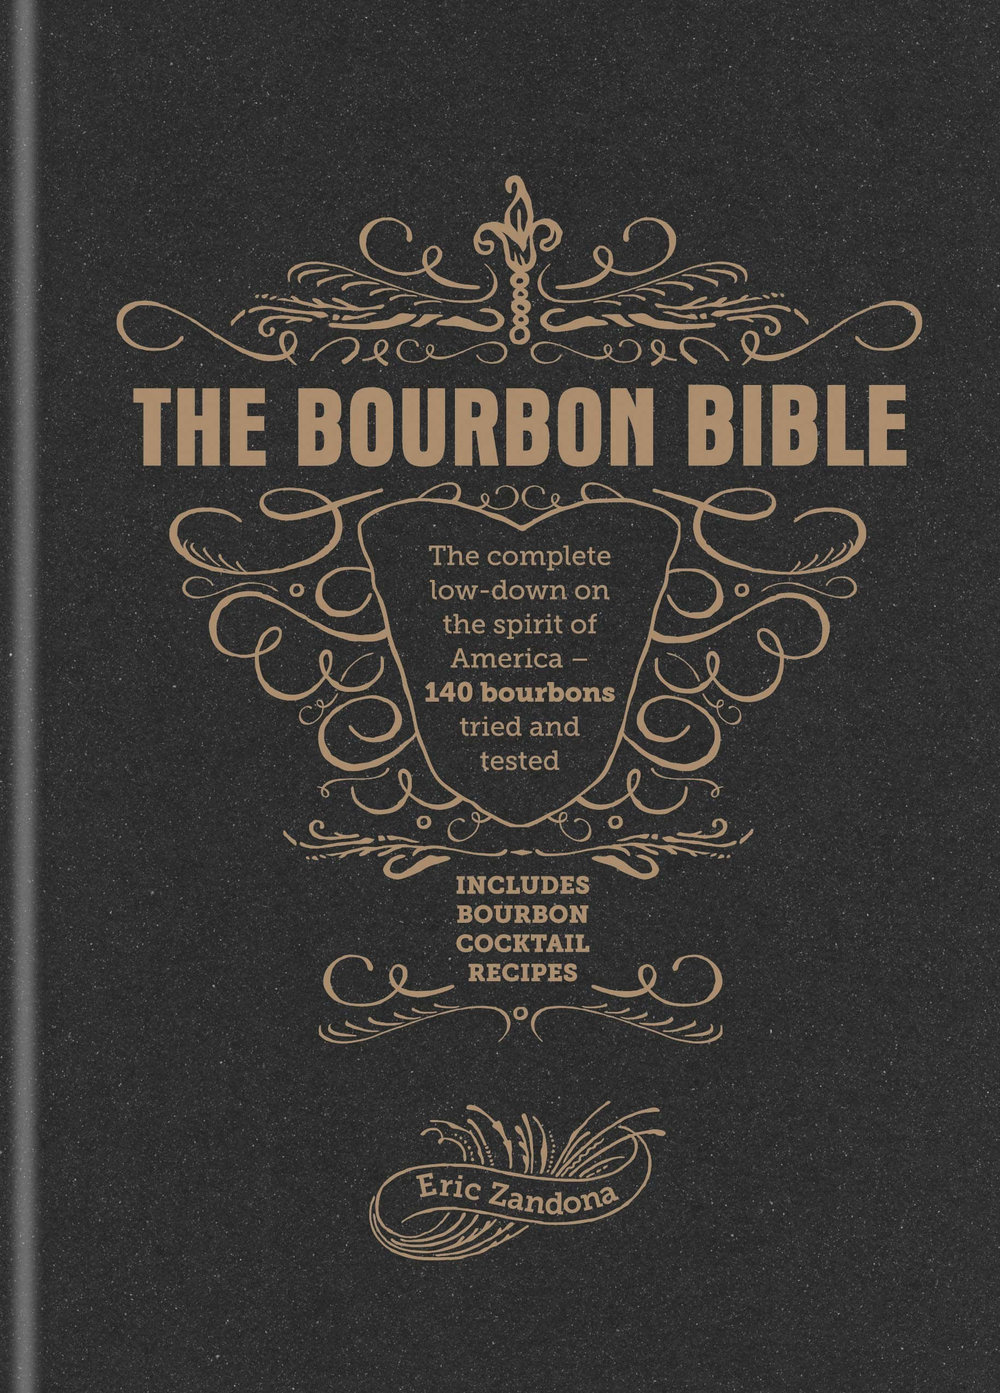 The Bourbon Bible by Eric Zandona Hardcover